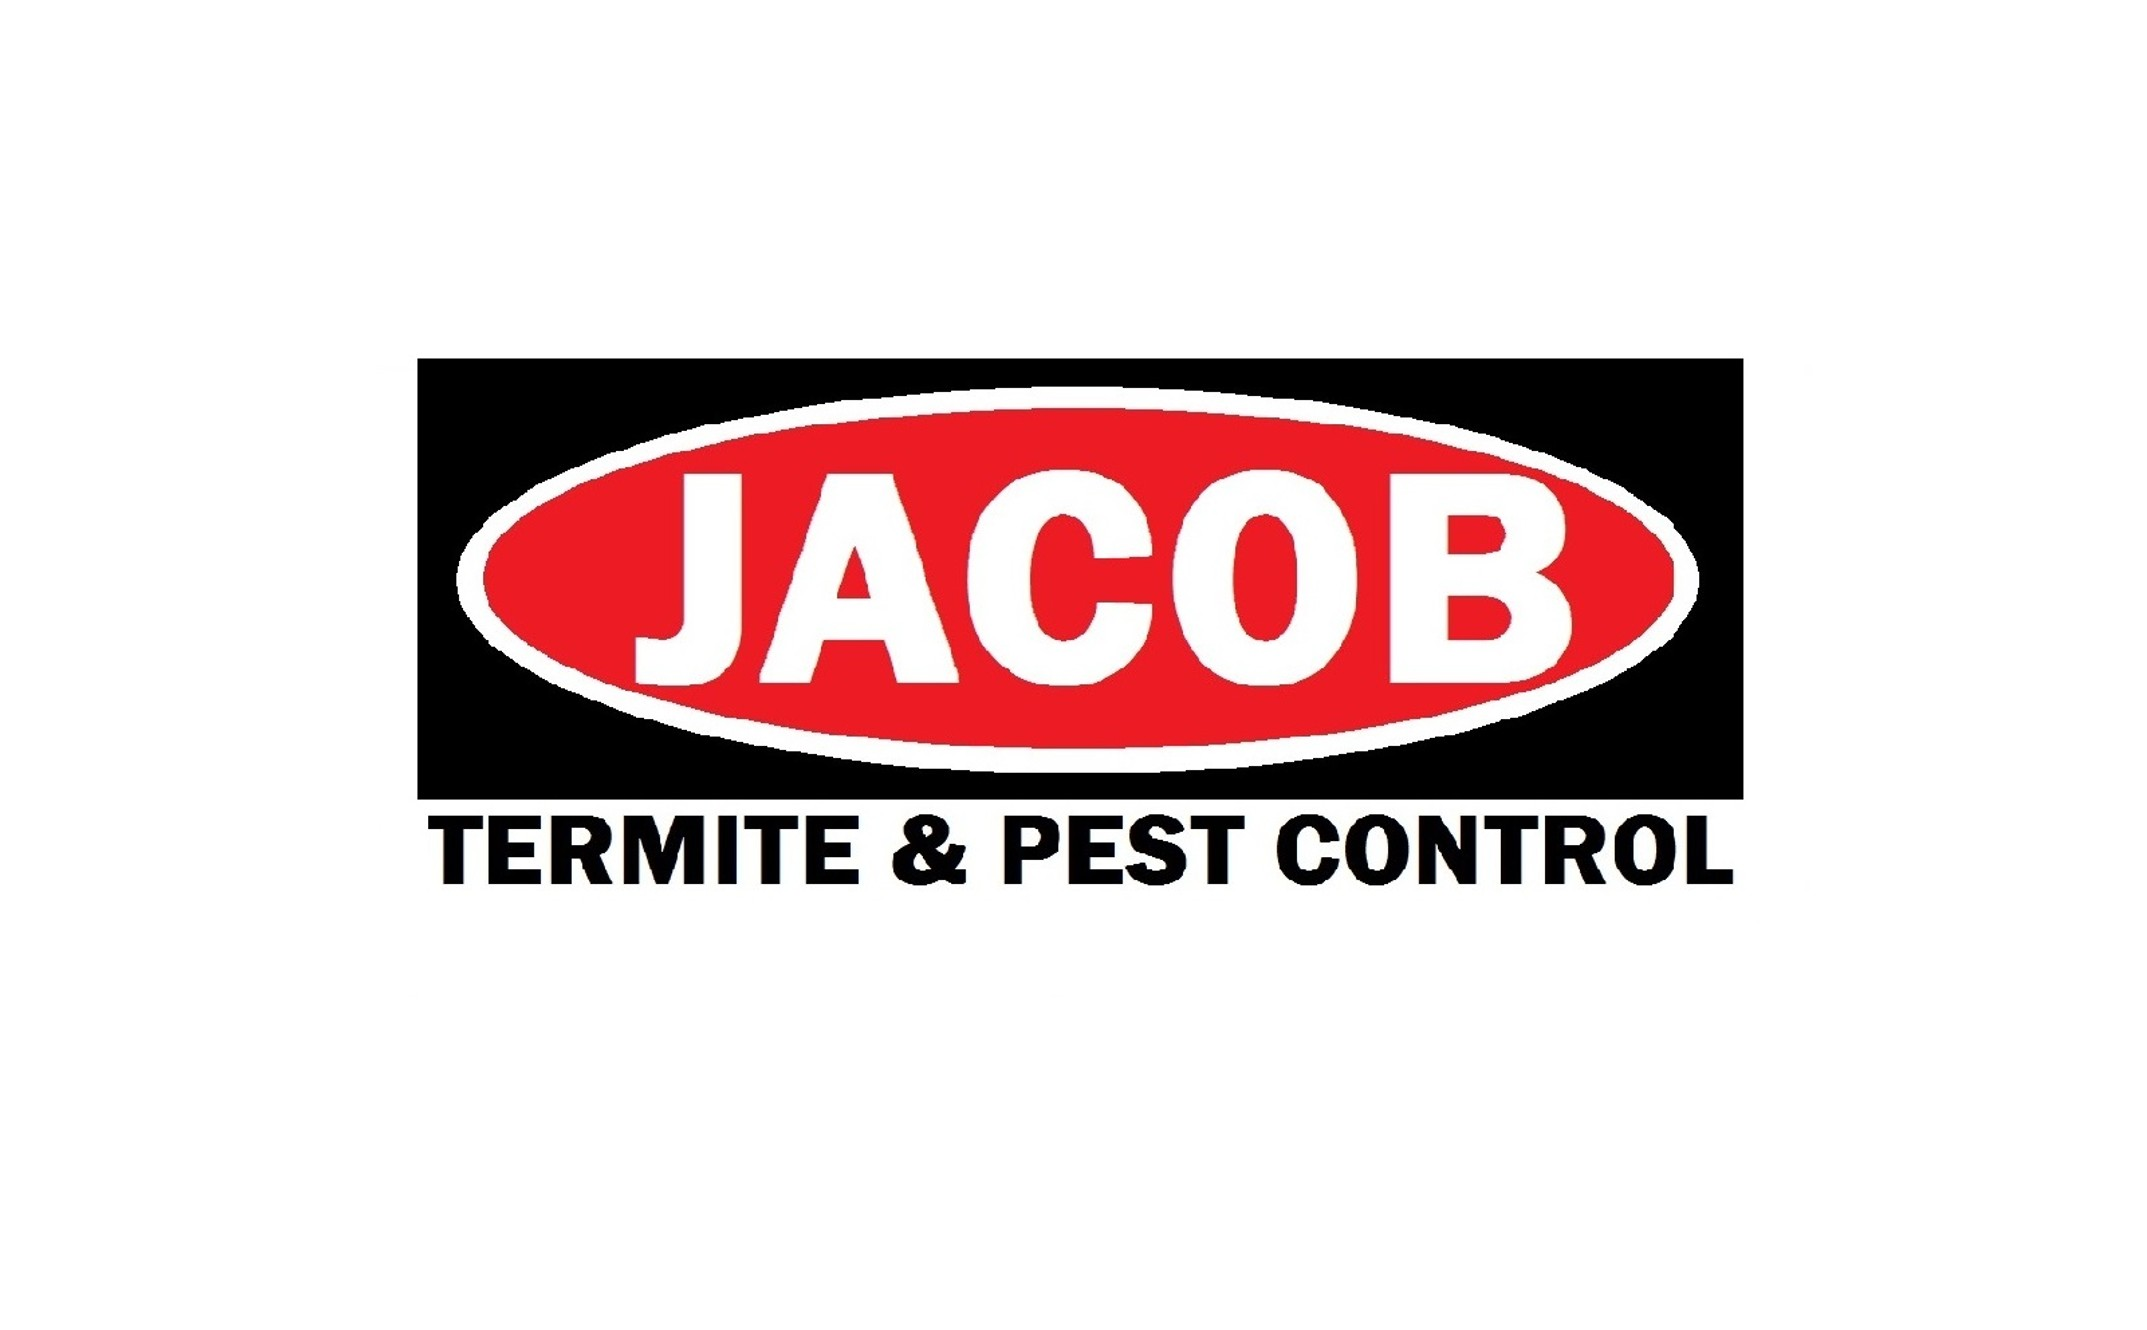 Jacob Termite & Pest Control Inc.